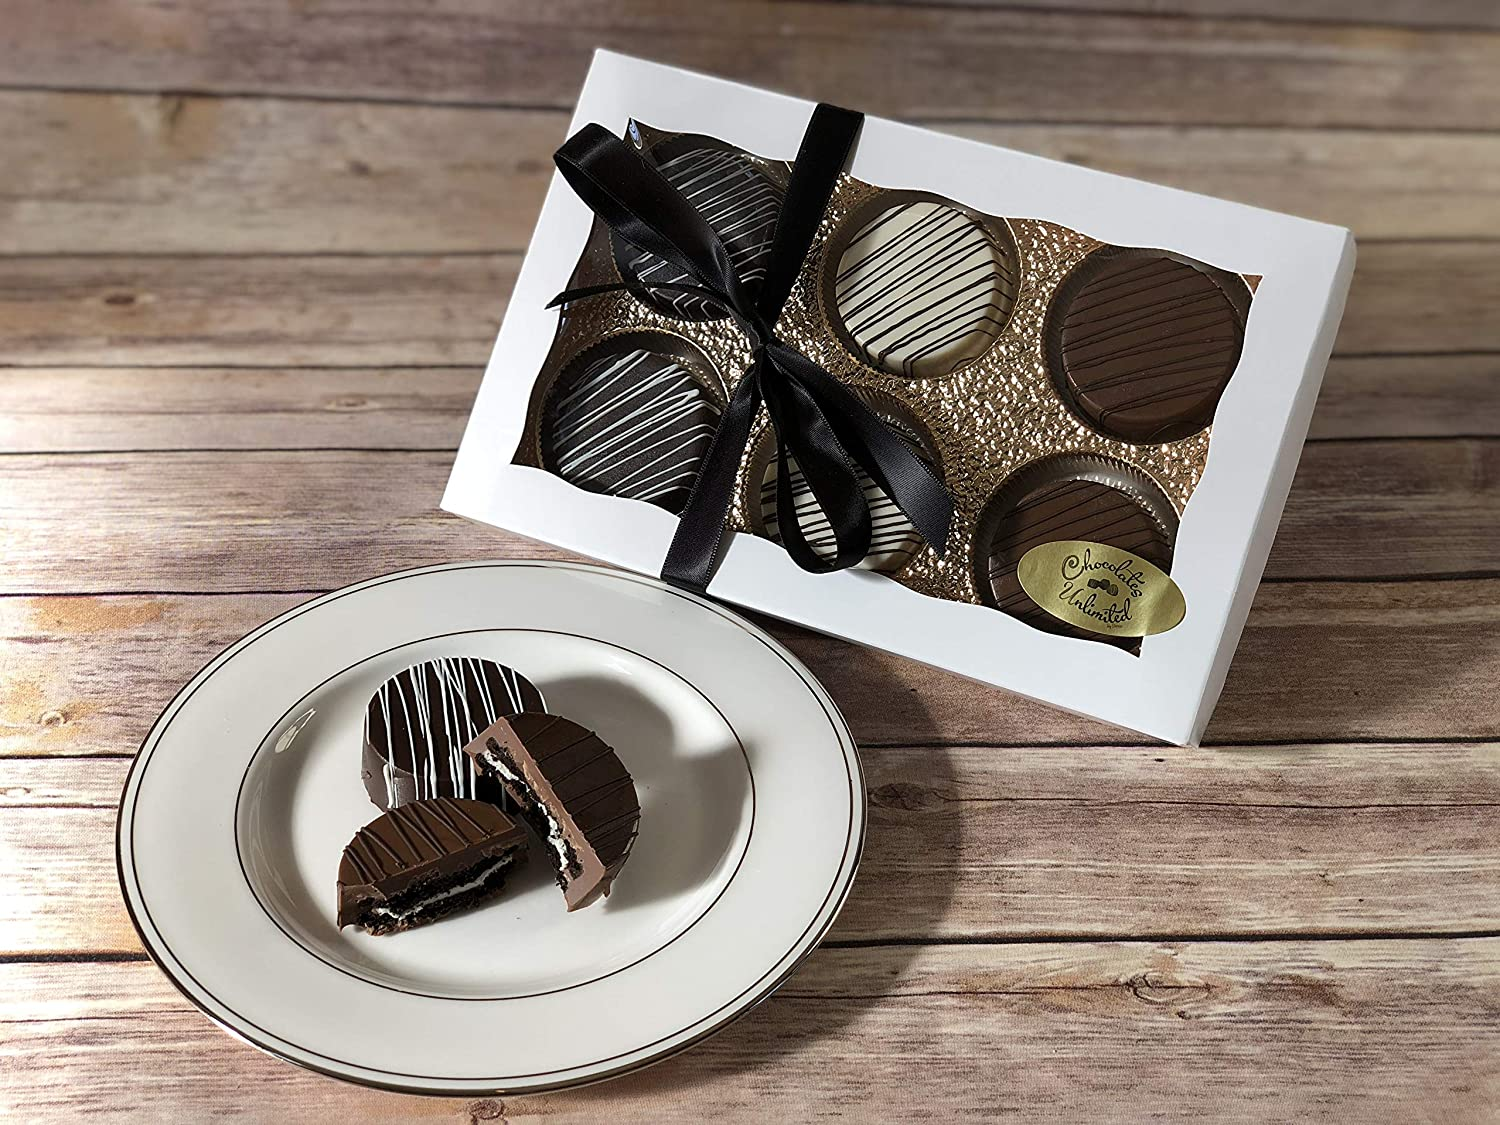 Chocolate Covered Cookies Gift Box, Elegant Chocolate Covered Cookies Gift, Gourmet Chocolate Cookies, Unique Gourmet Food Gift Idea for Women, Men, Birthday, Corporate, Holiday Basket